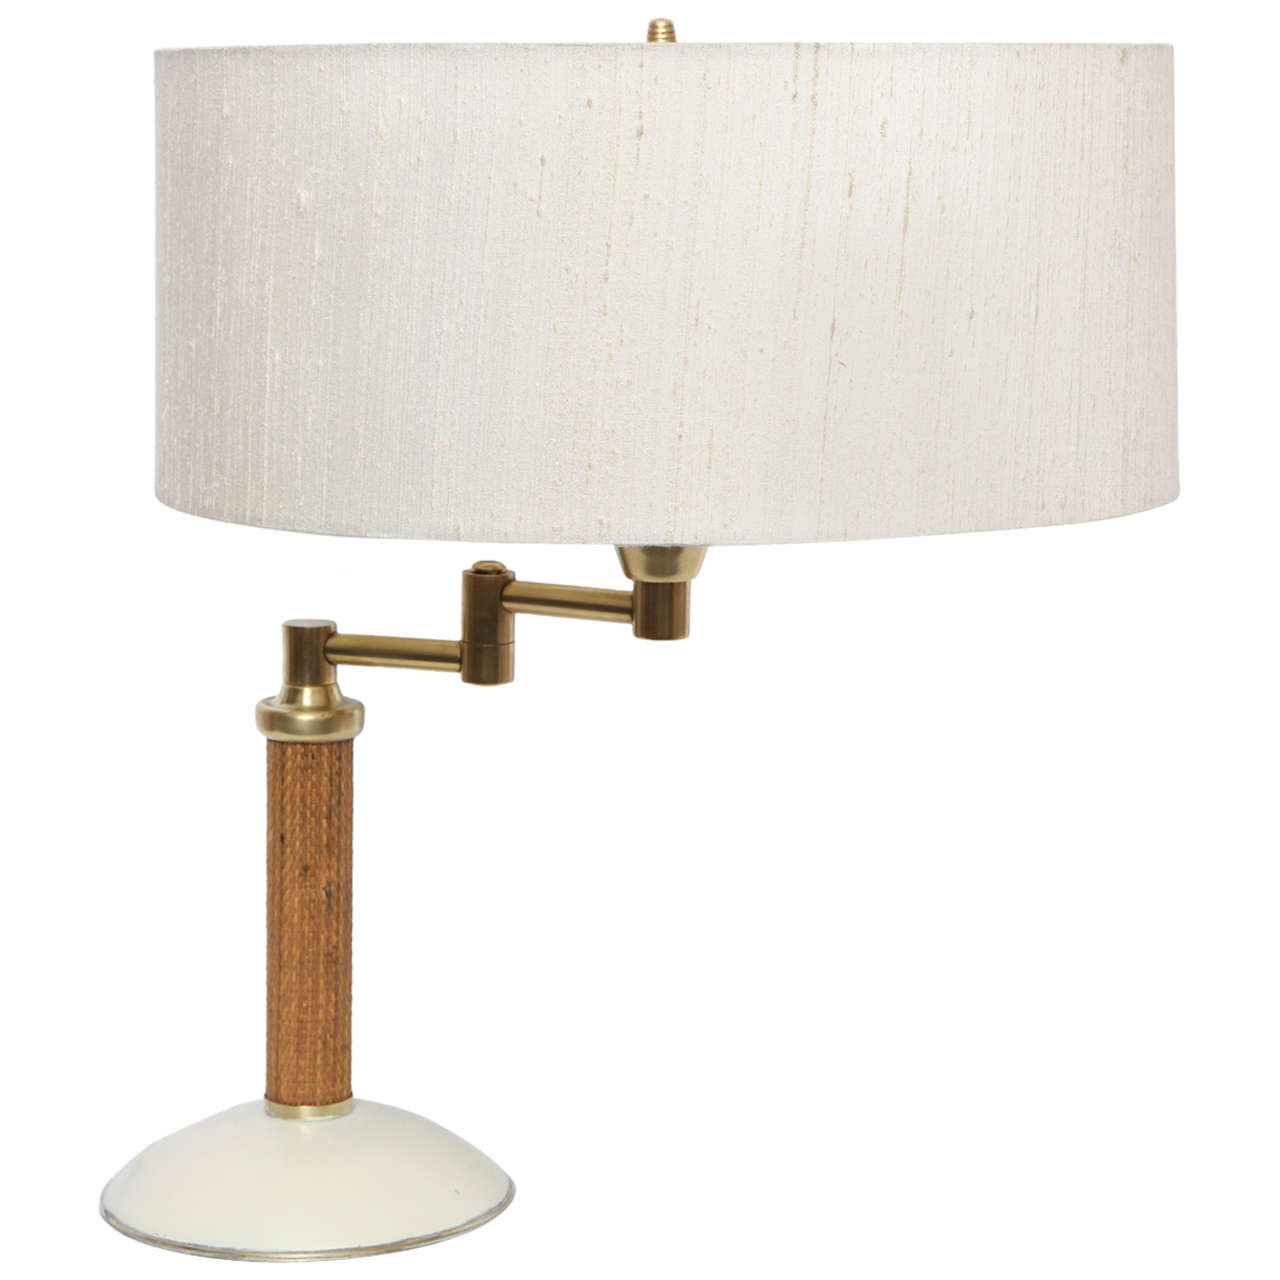 1930s American Modernist Articulated Table Lamp Attributed to Kurt Versen 1